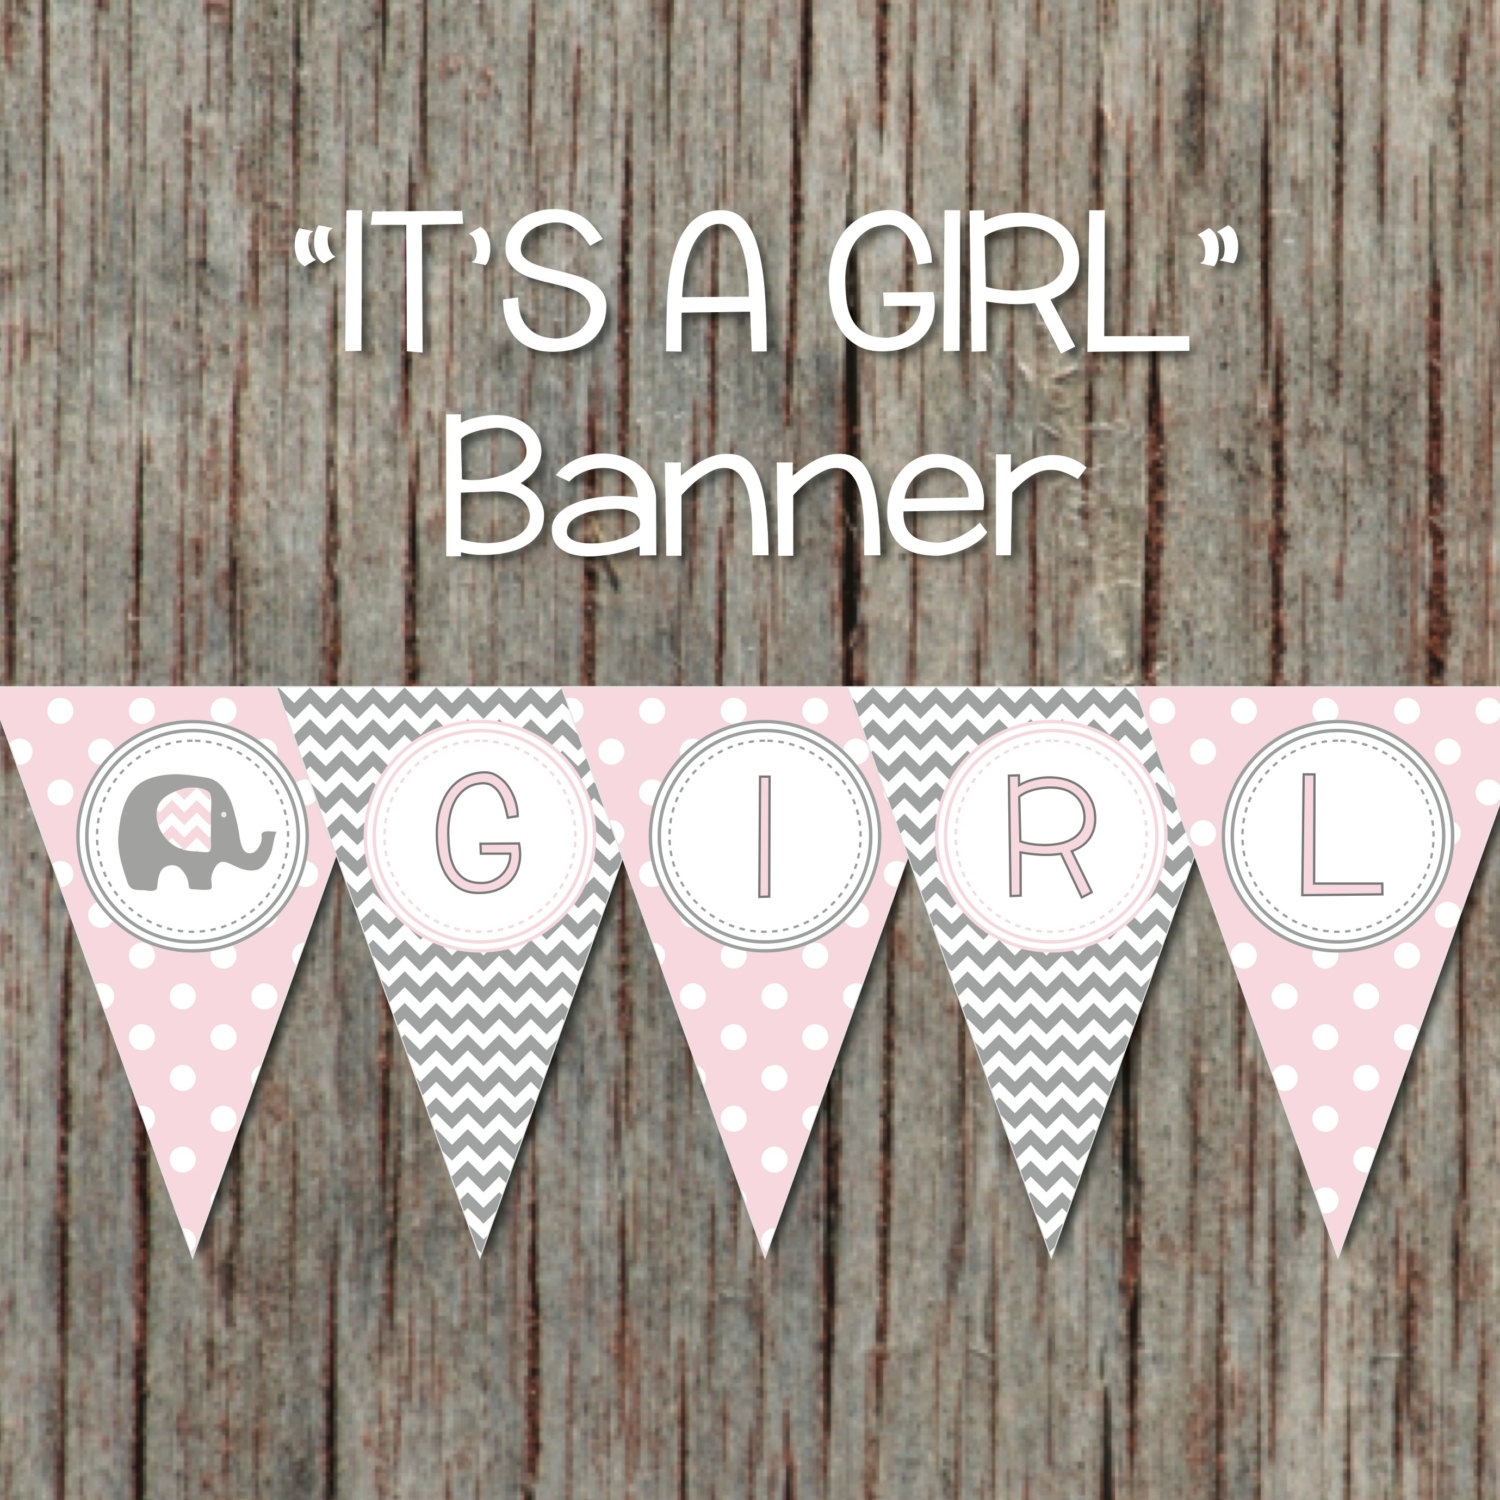 Full Size of Baby Shower:89+ Indulging Baby Shower Banner Picture Inspirations Baby Shower Banner Baby Shower Food Boy Baby Shower Giveaways Baby Shower Cake Ideas Baby Shower Game Prizes